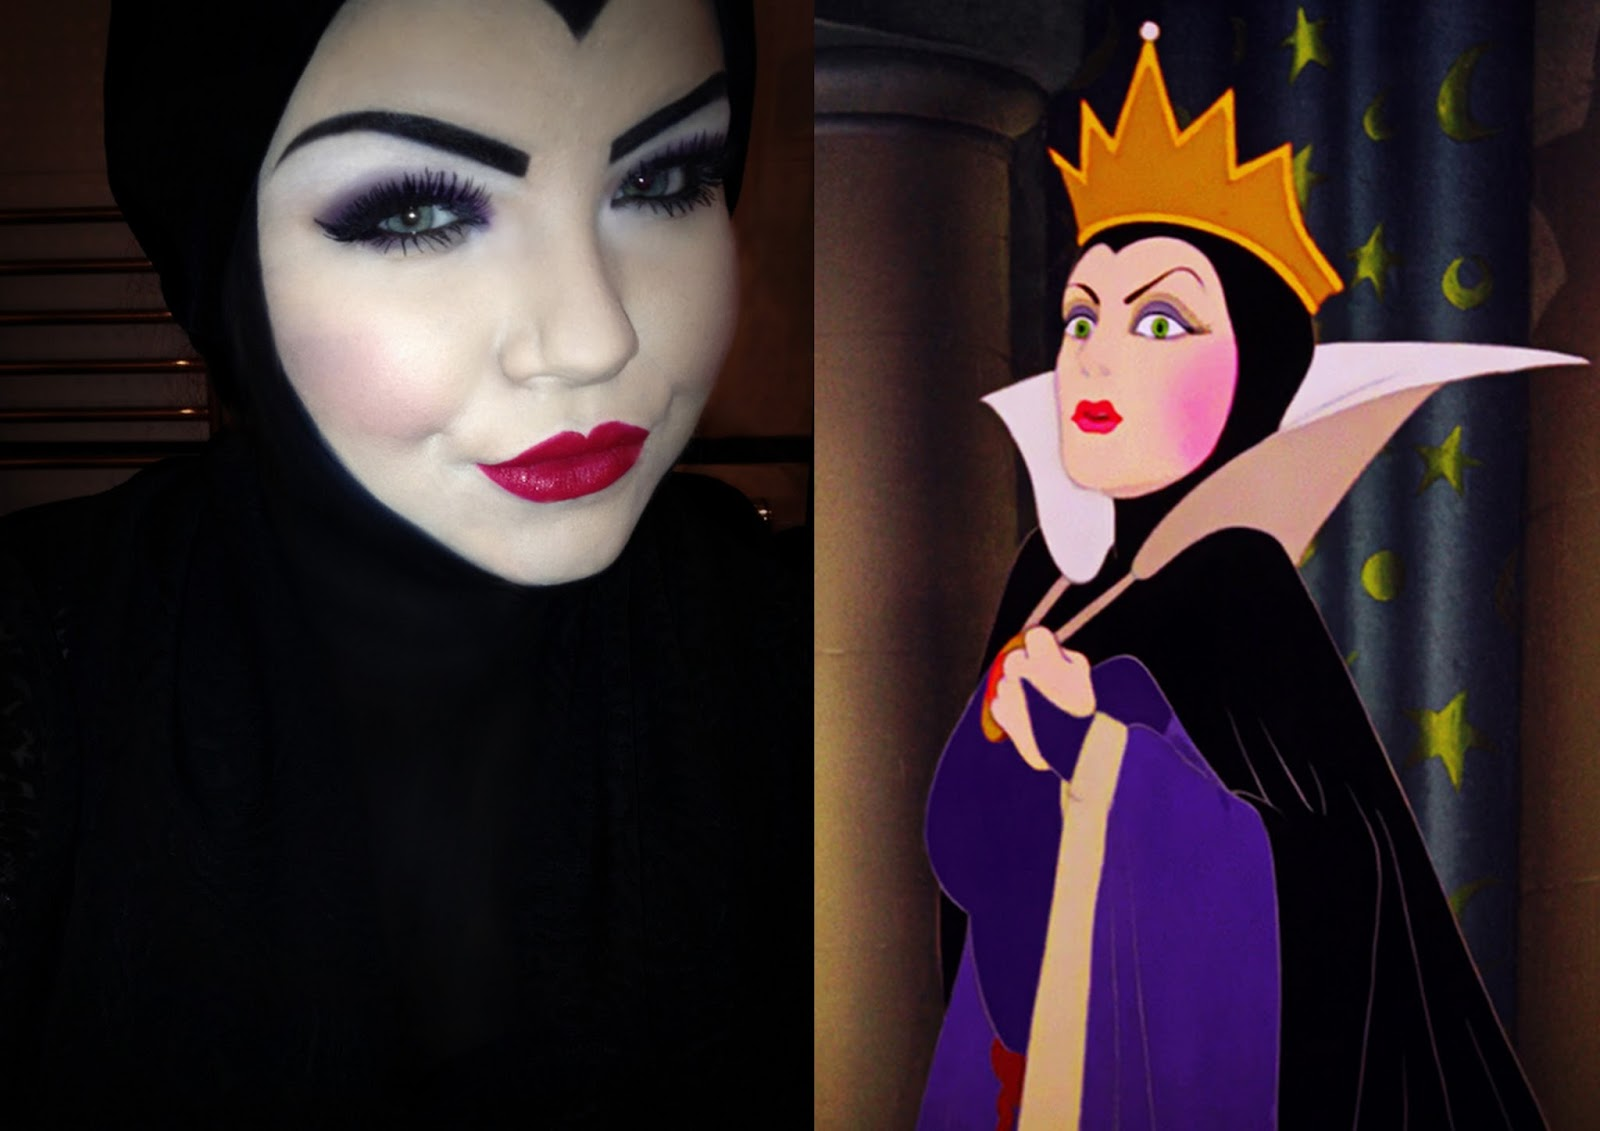 halloween makeup: disney's the evil queen - she might be loved